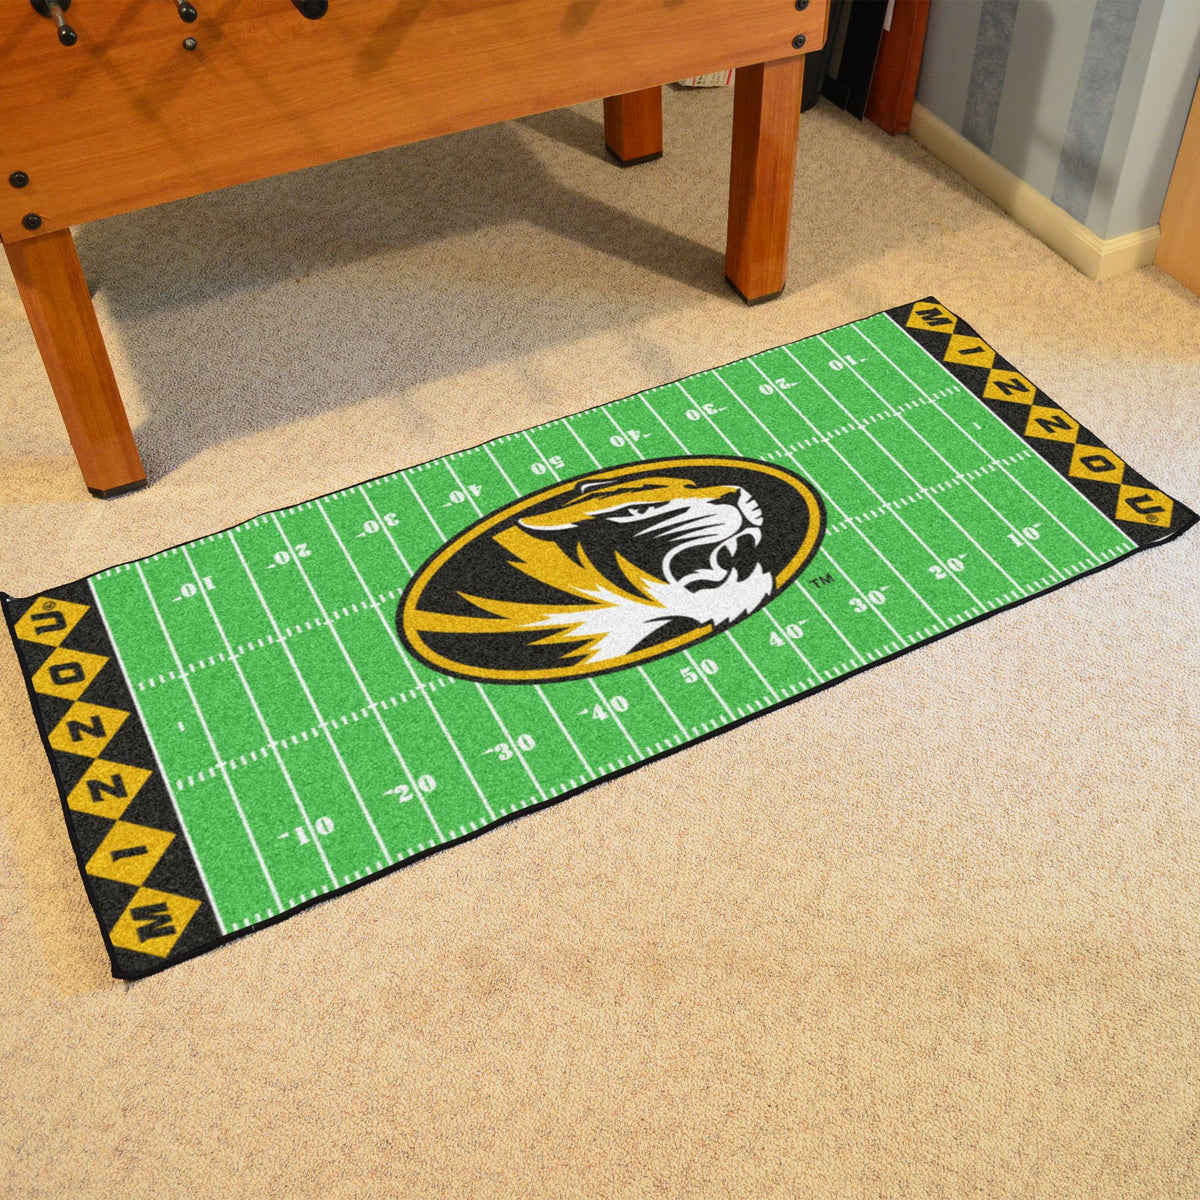 Collegiate - Football Field Runner Collegiate Mats, Rectangular Mats, Football Field Runner, Collegiate, Home Fan Mats Missouri